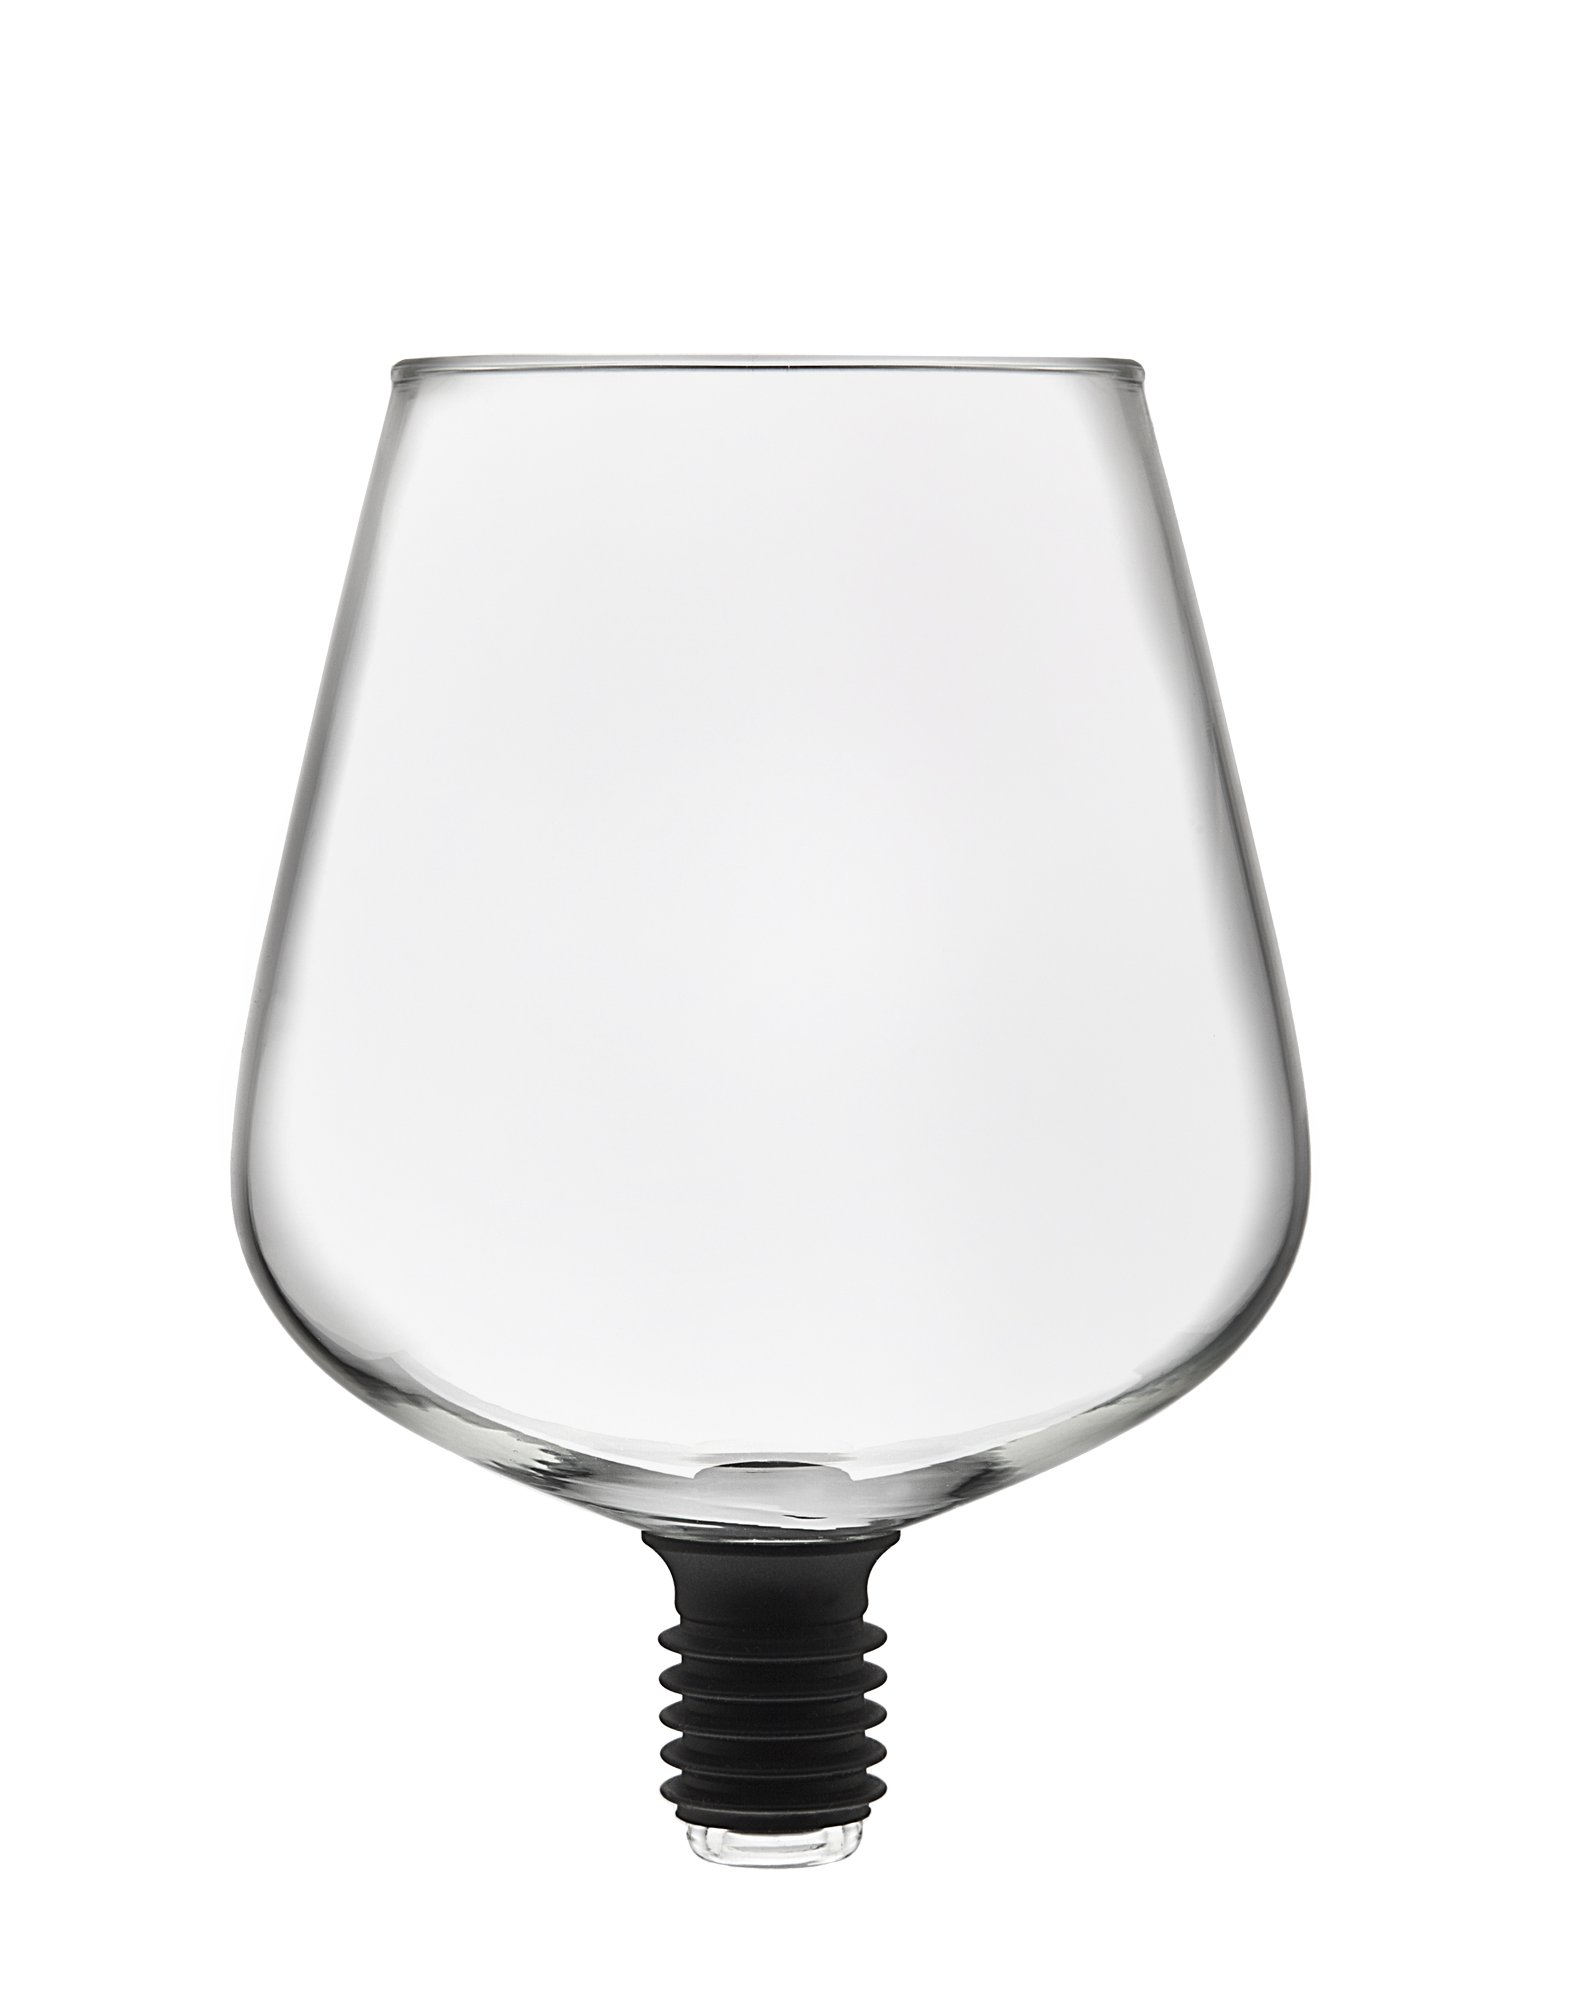 Godinger 22103 Chugmate Wine Glass Topper, the Goblet to Drink Straight from the Bottle, 8 oz, Clear